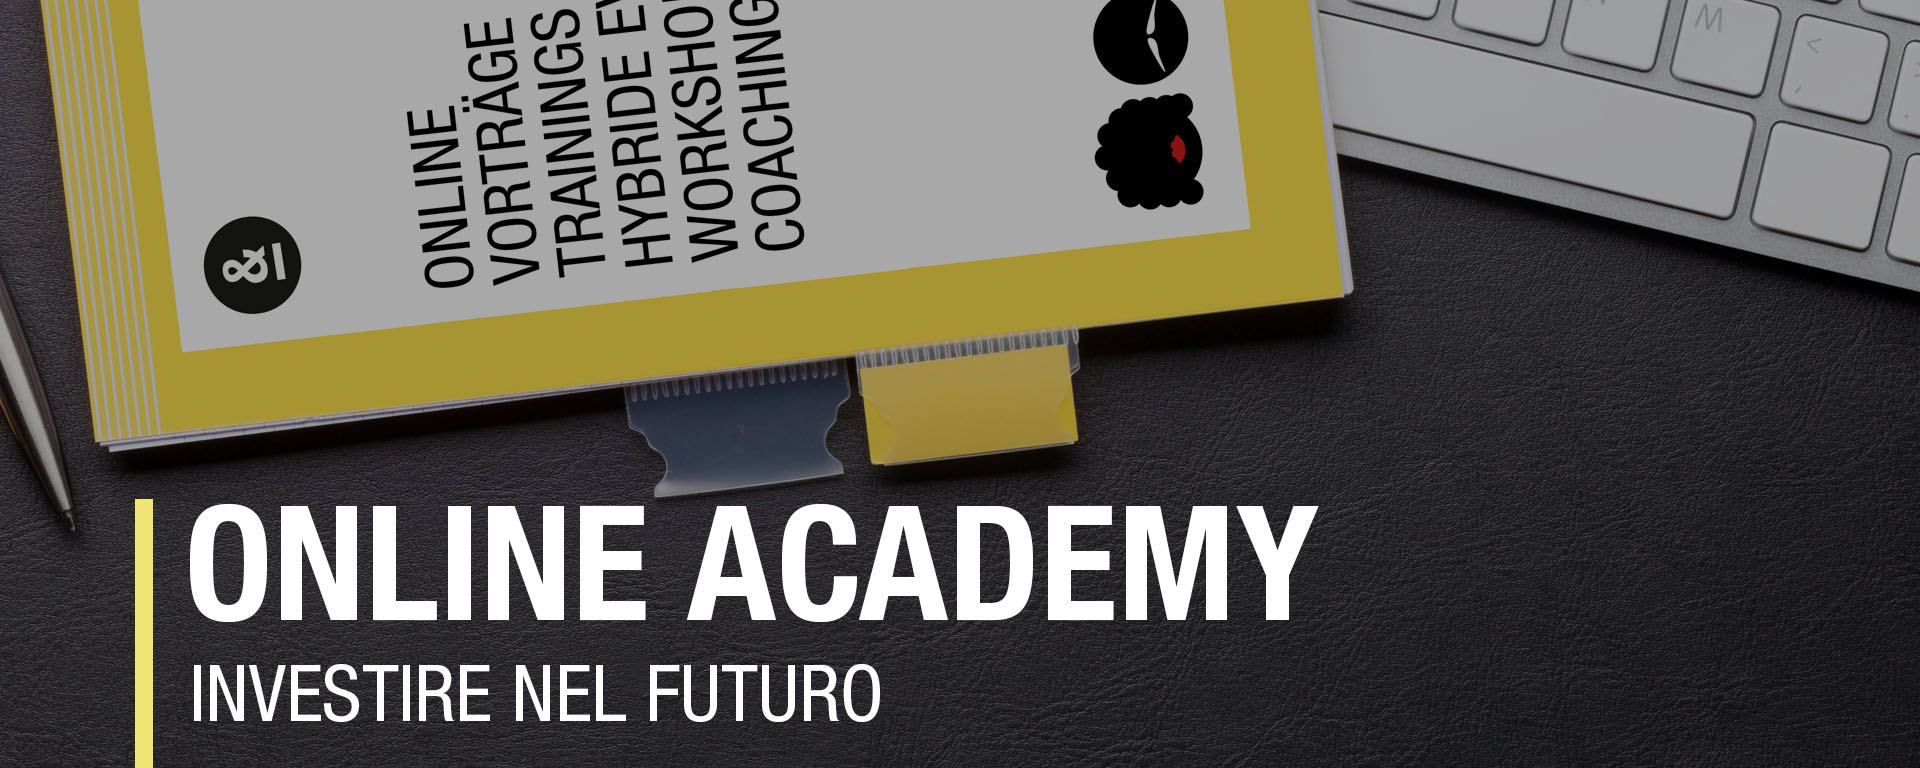 Accademia online, Accademia digitale, Coaching Ausbildung online, E learning